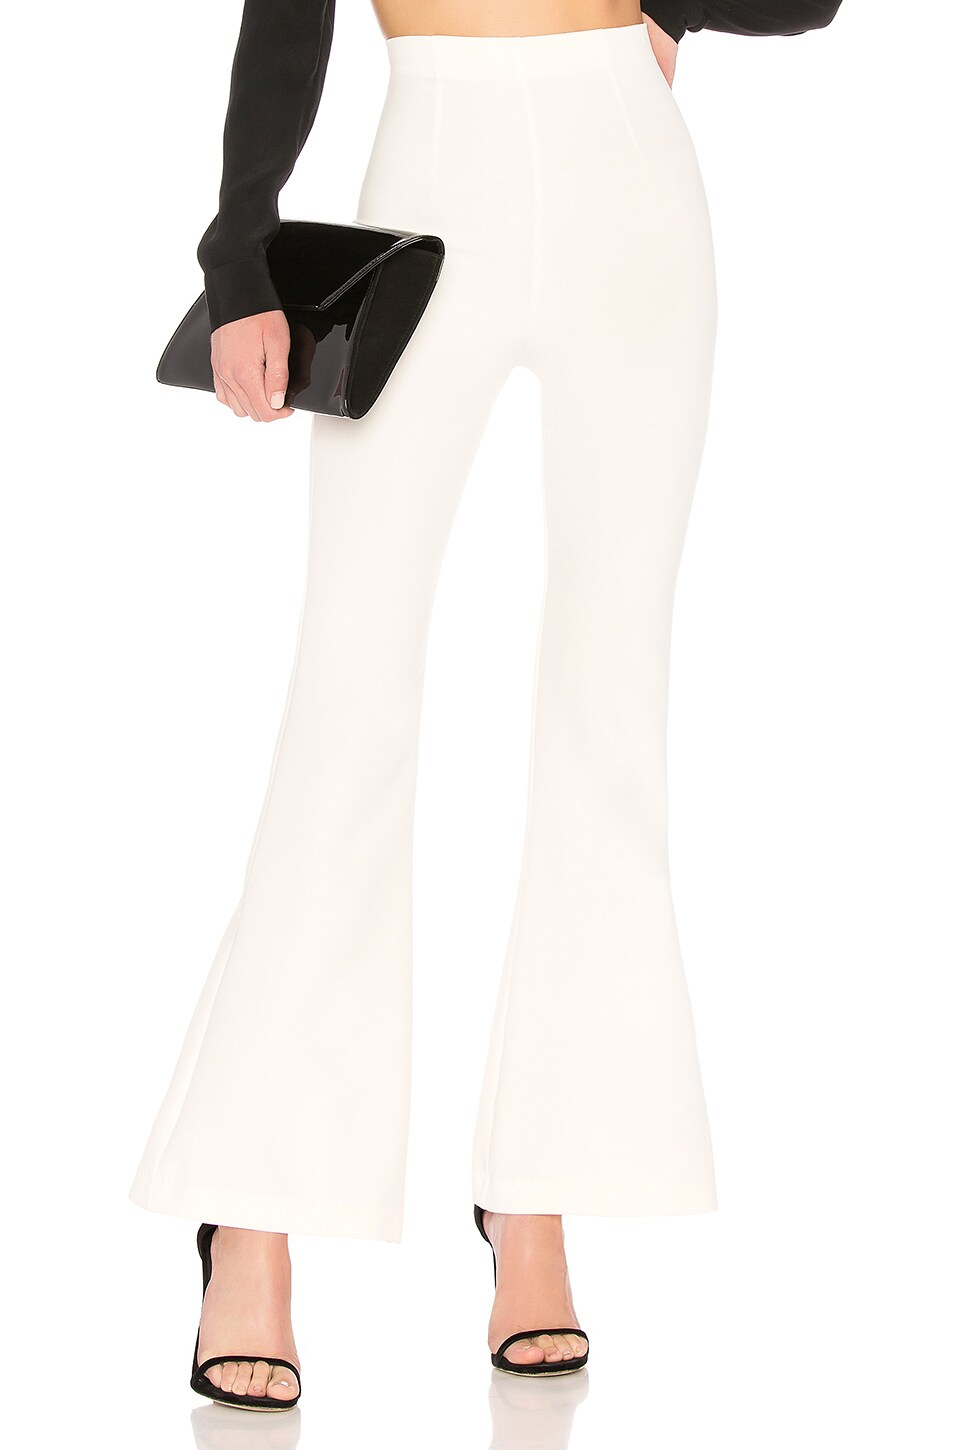 Michael Costello x REVOLVE Margeaux Pant in Ivory